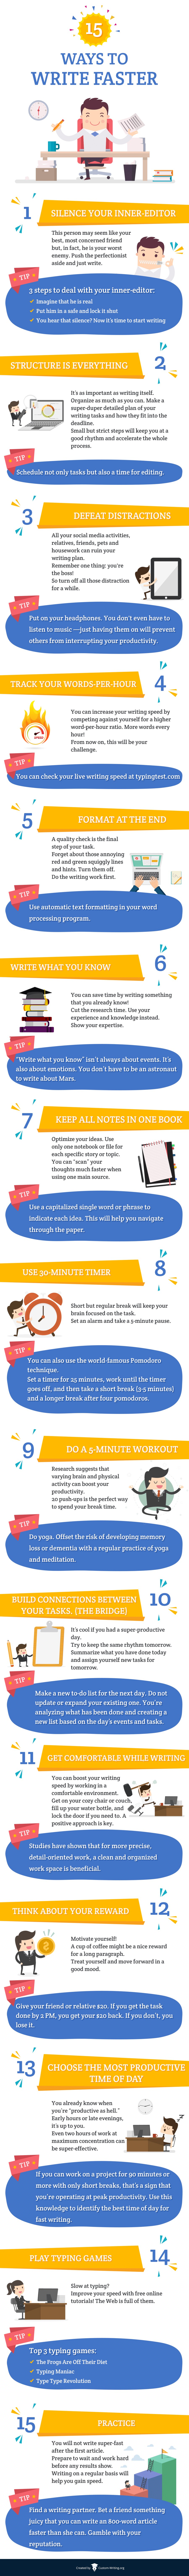 infographic how to write better ophthalmic technician cover letter 1nygieptrkhsrauesc3i4kw infographic how to write - Ophthalmic Technician Cover Letter